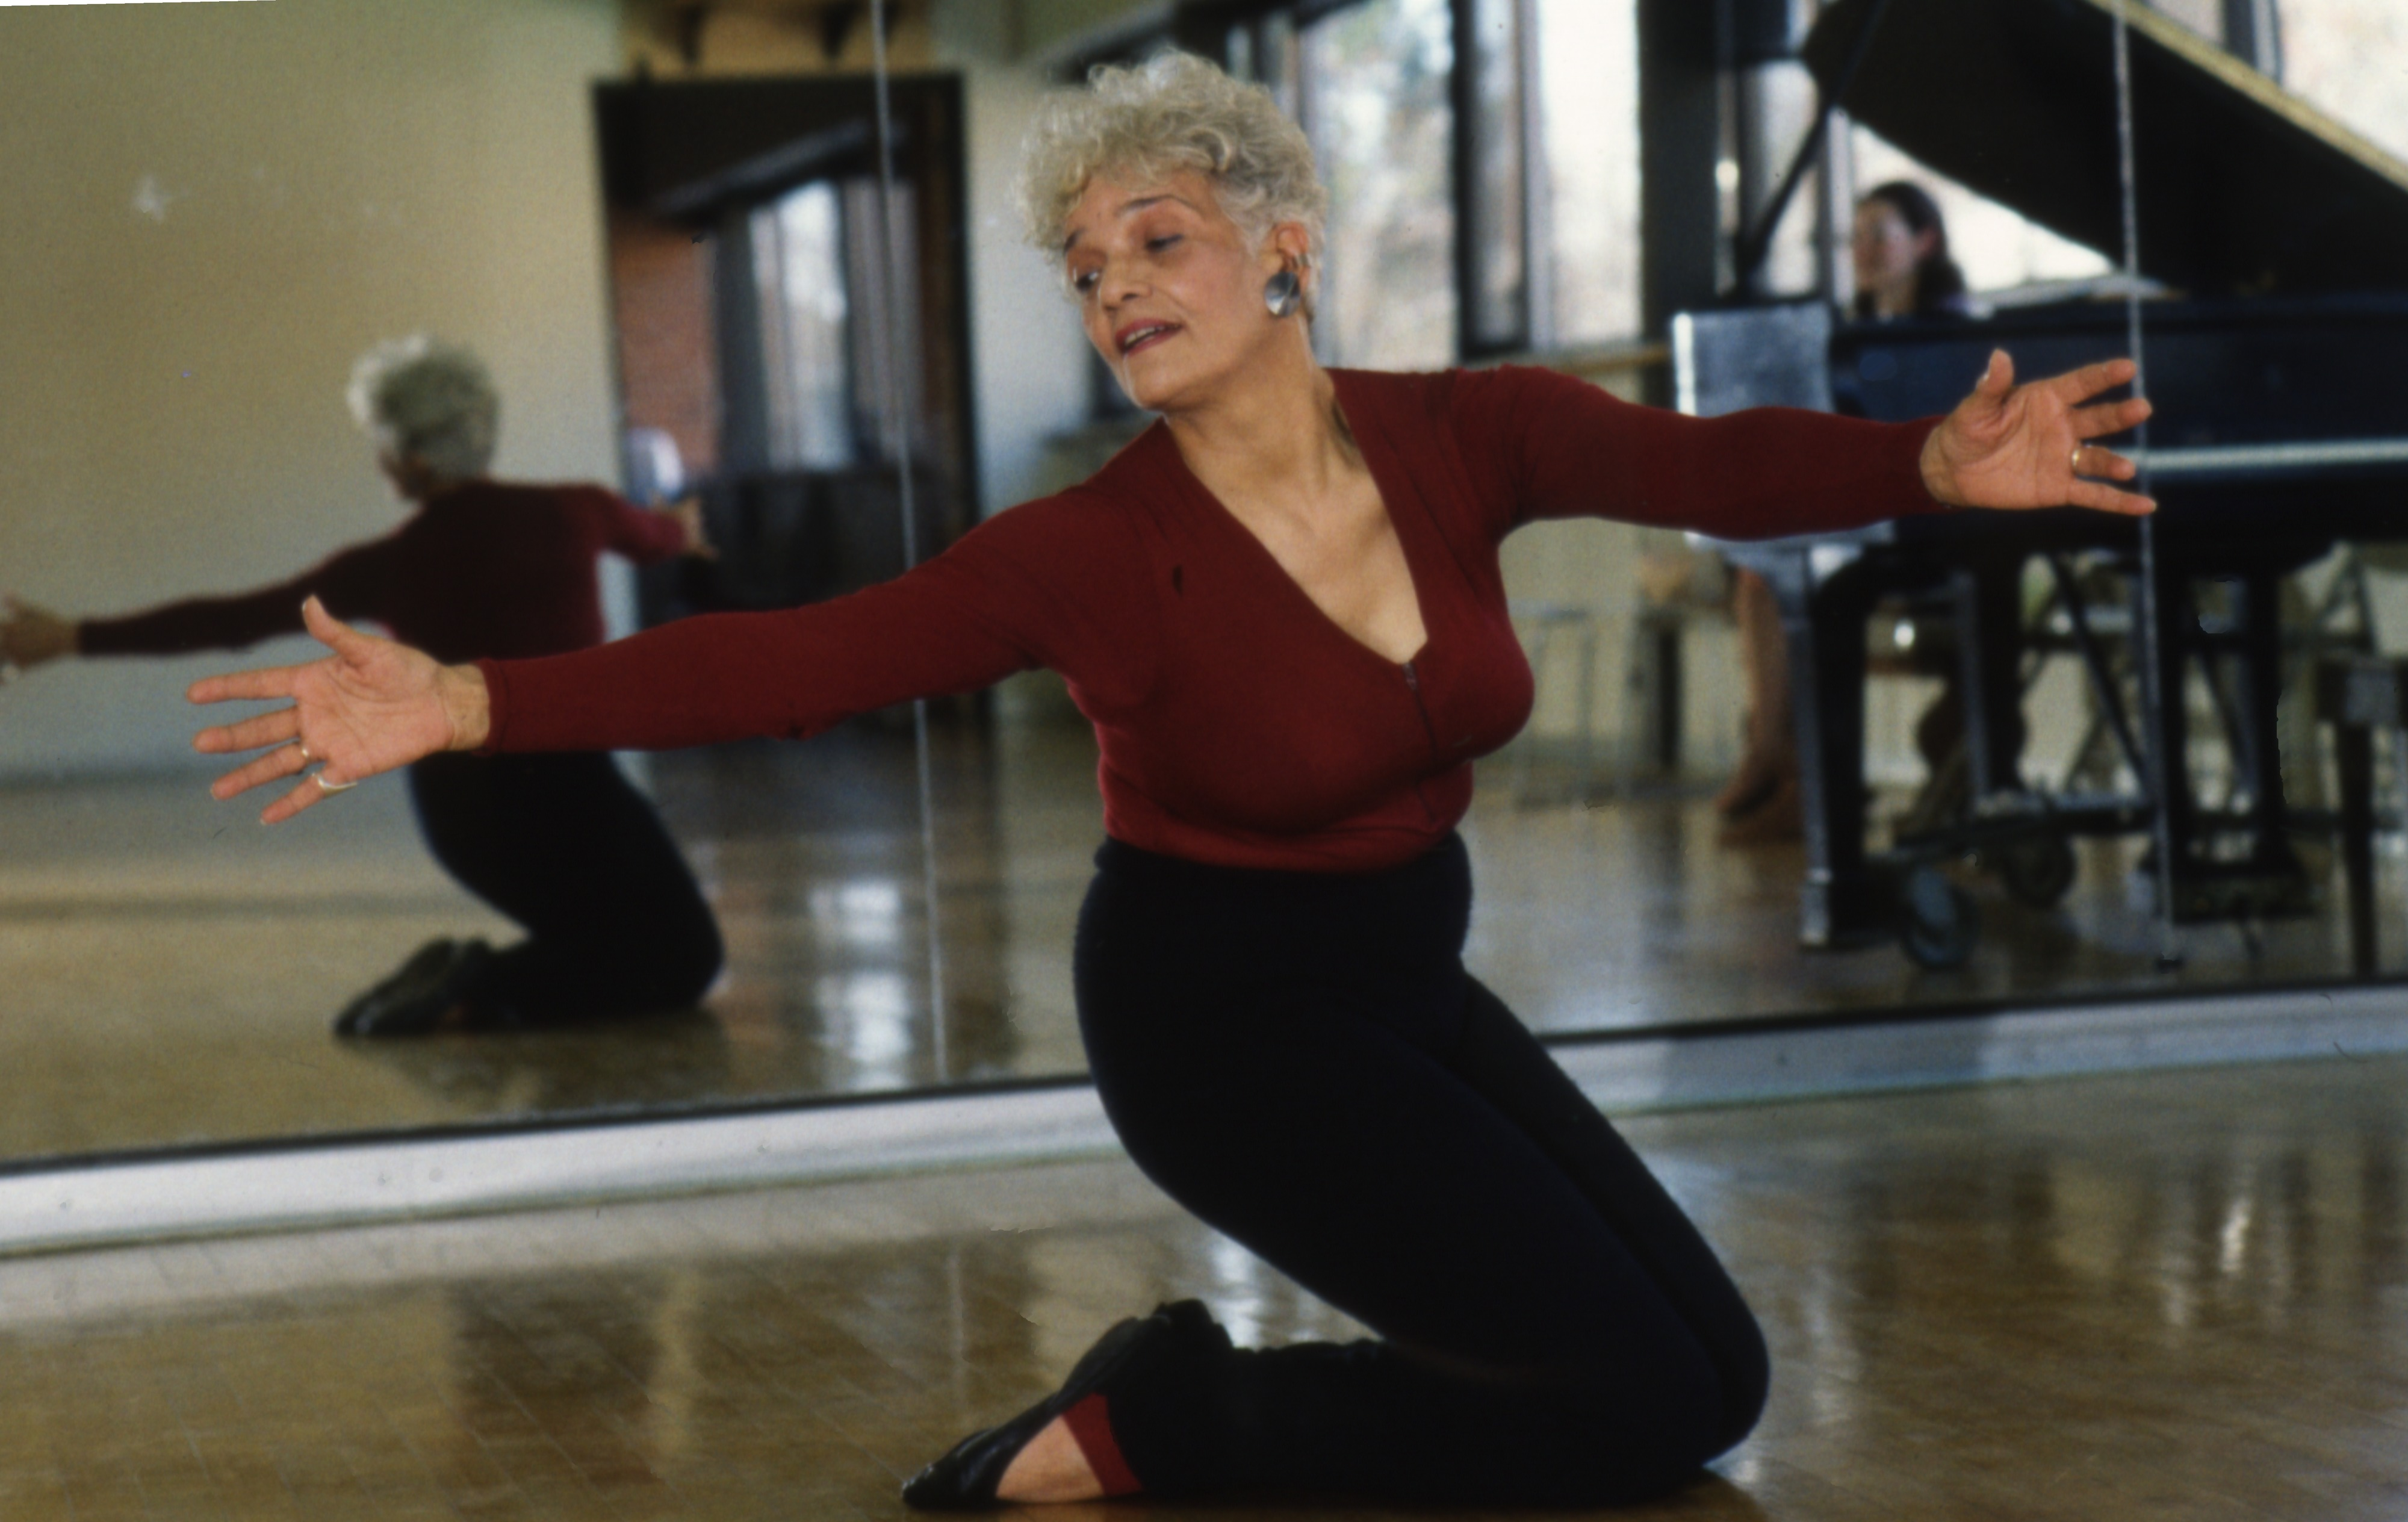 Vera Embree Practices Some Dance Moves, April 27, 1986 image